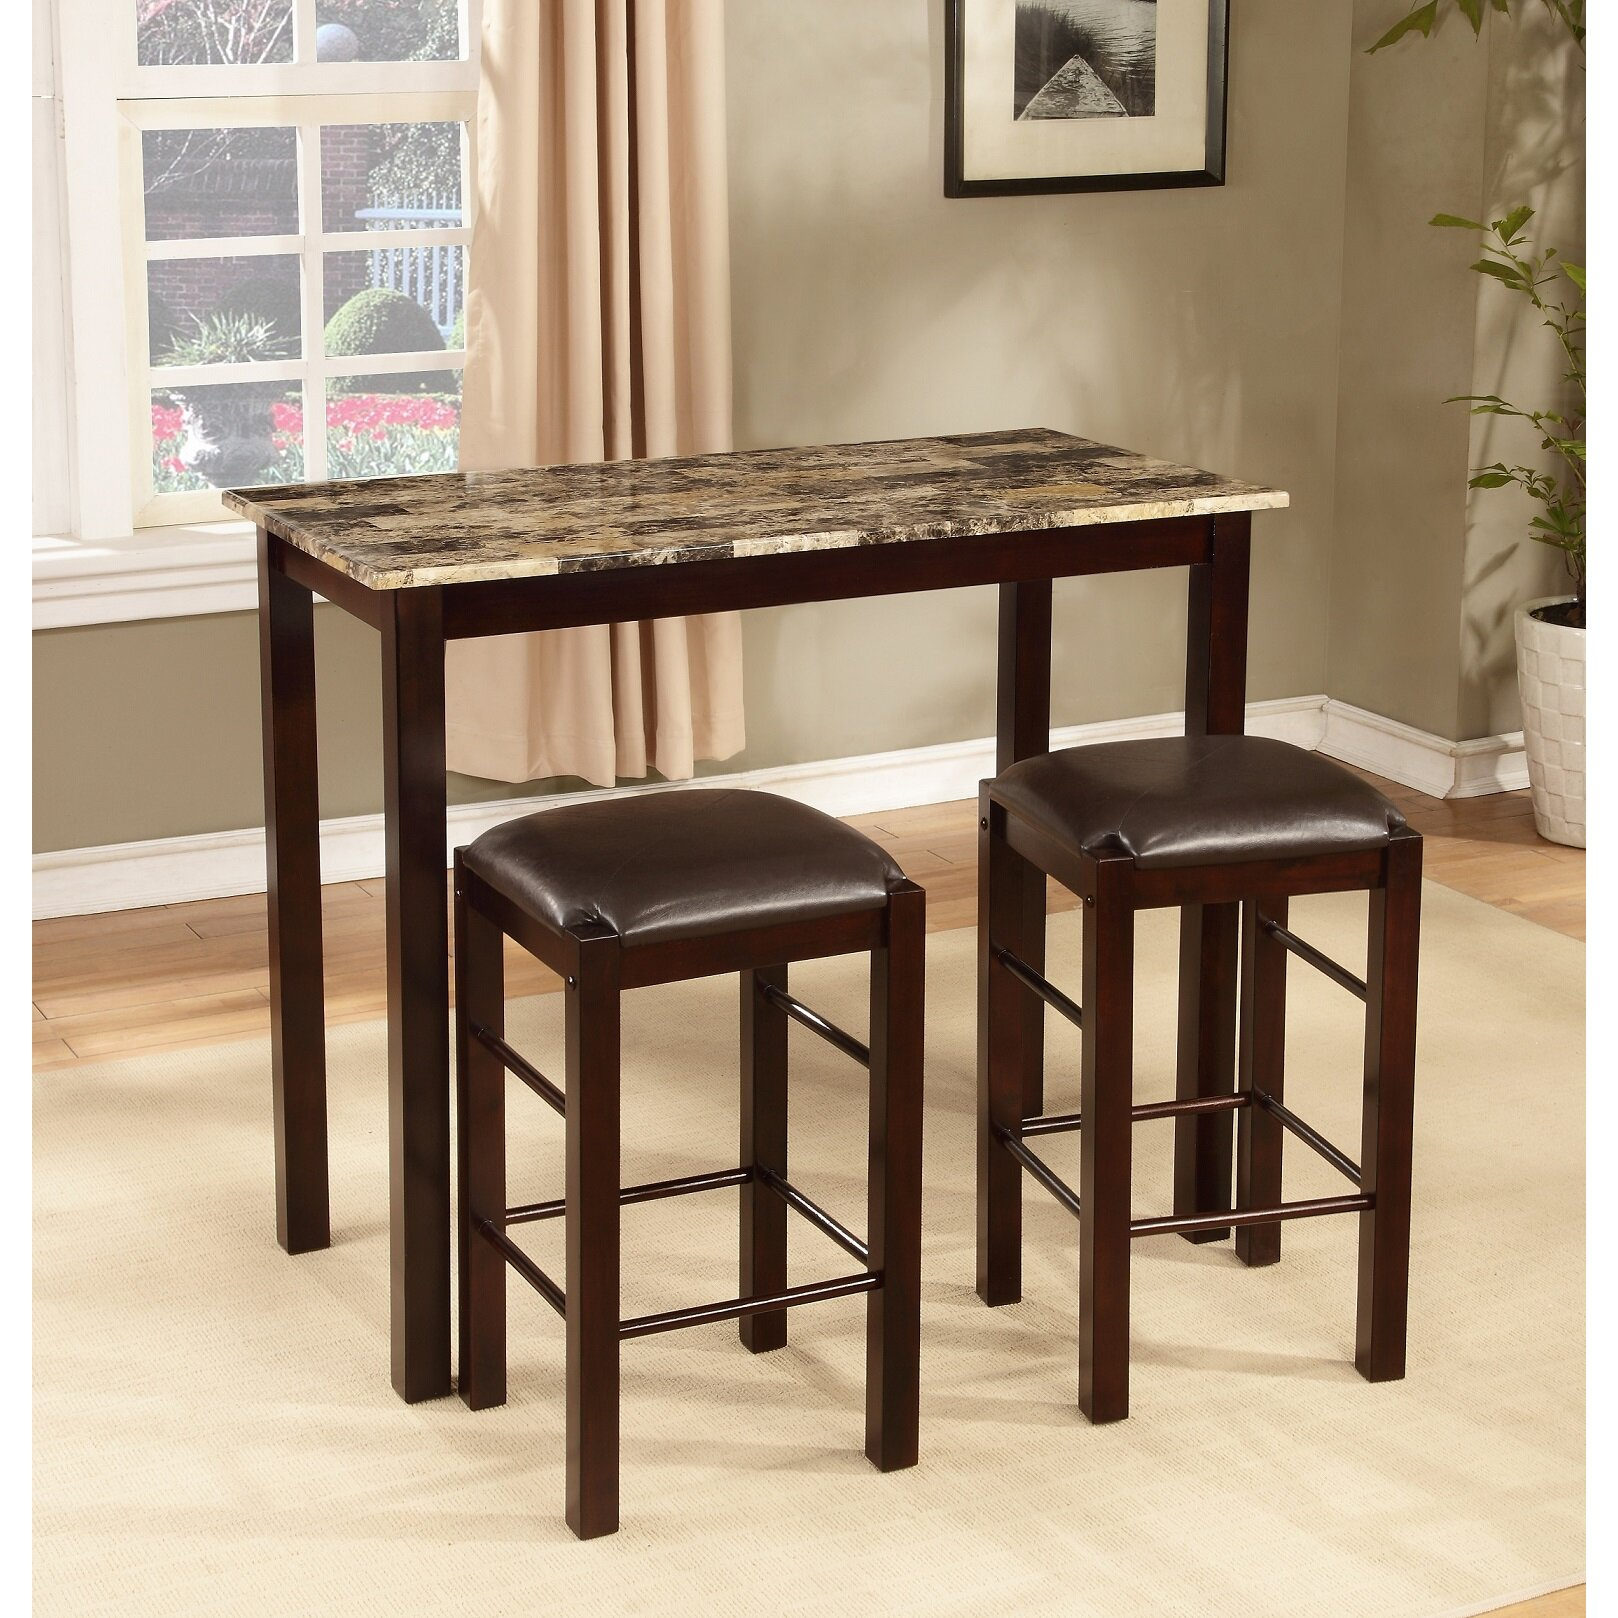 counter height dining sets c counter height kitchen chairs Brando 3 Piece Counter Height Dining Set